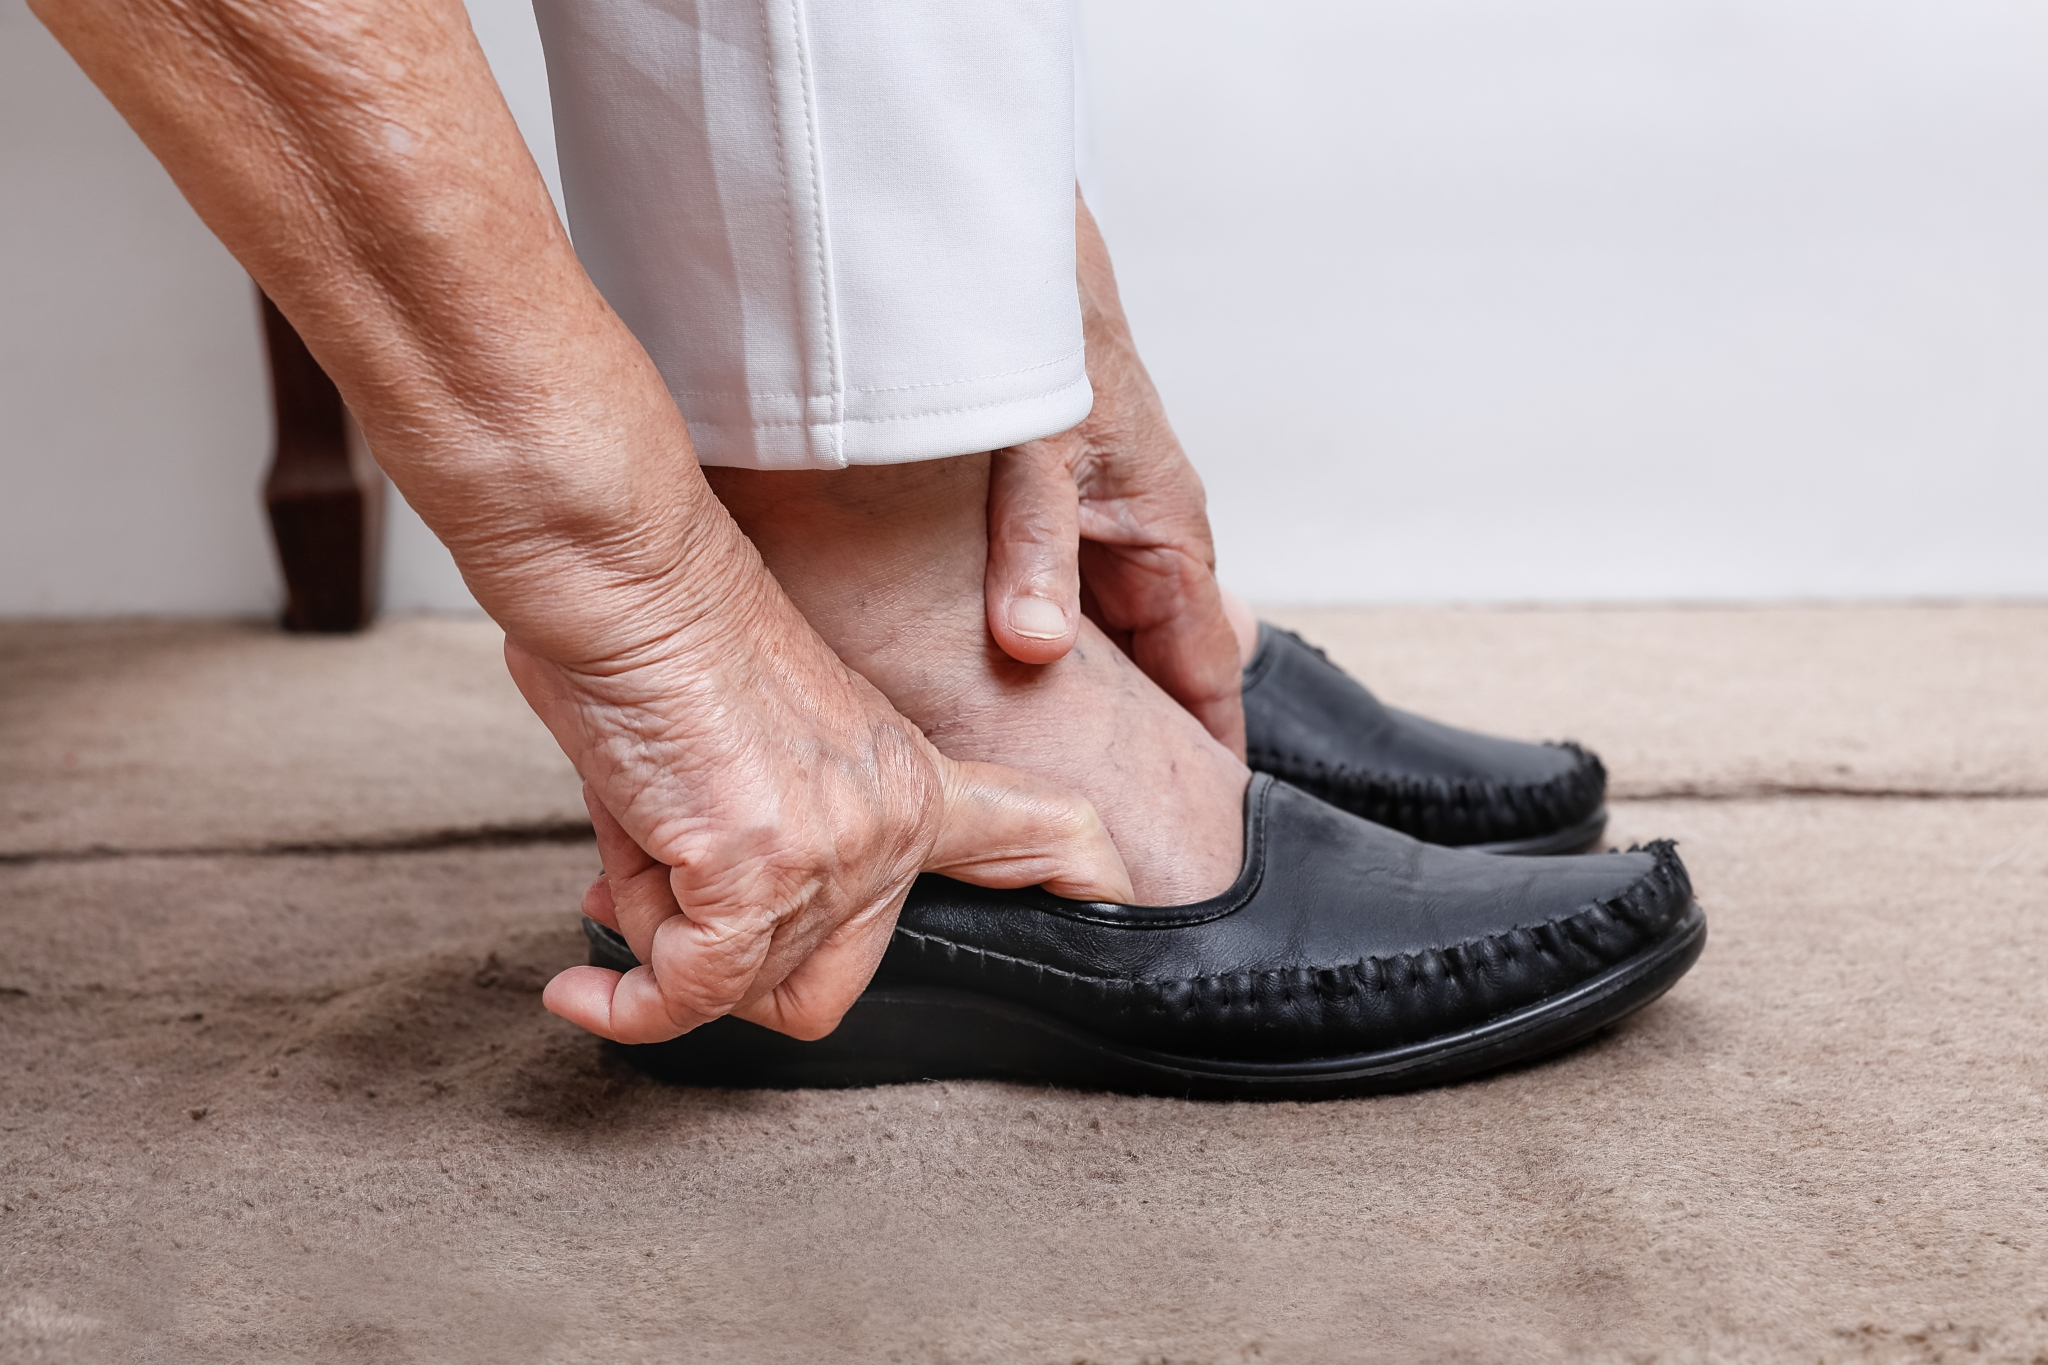 The Aging Foot — Problems, Prevention and Proactive Topics